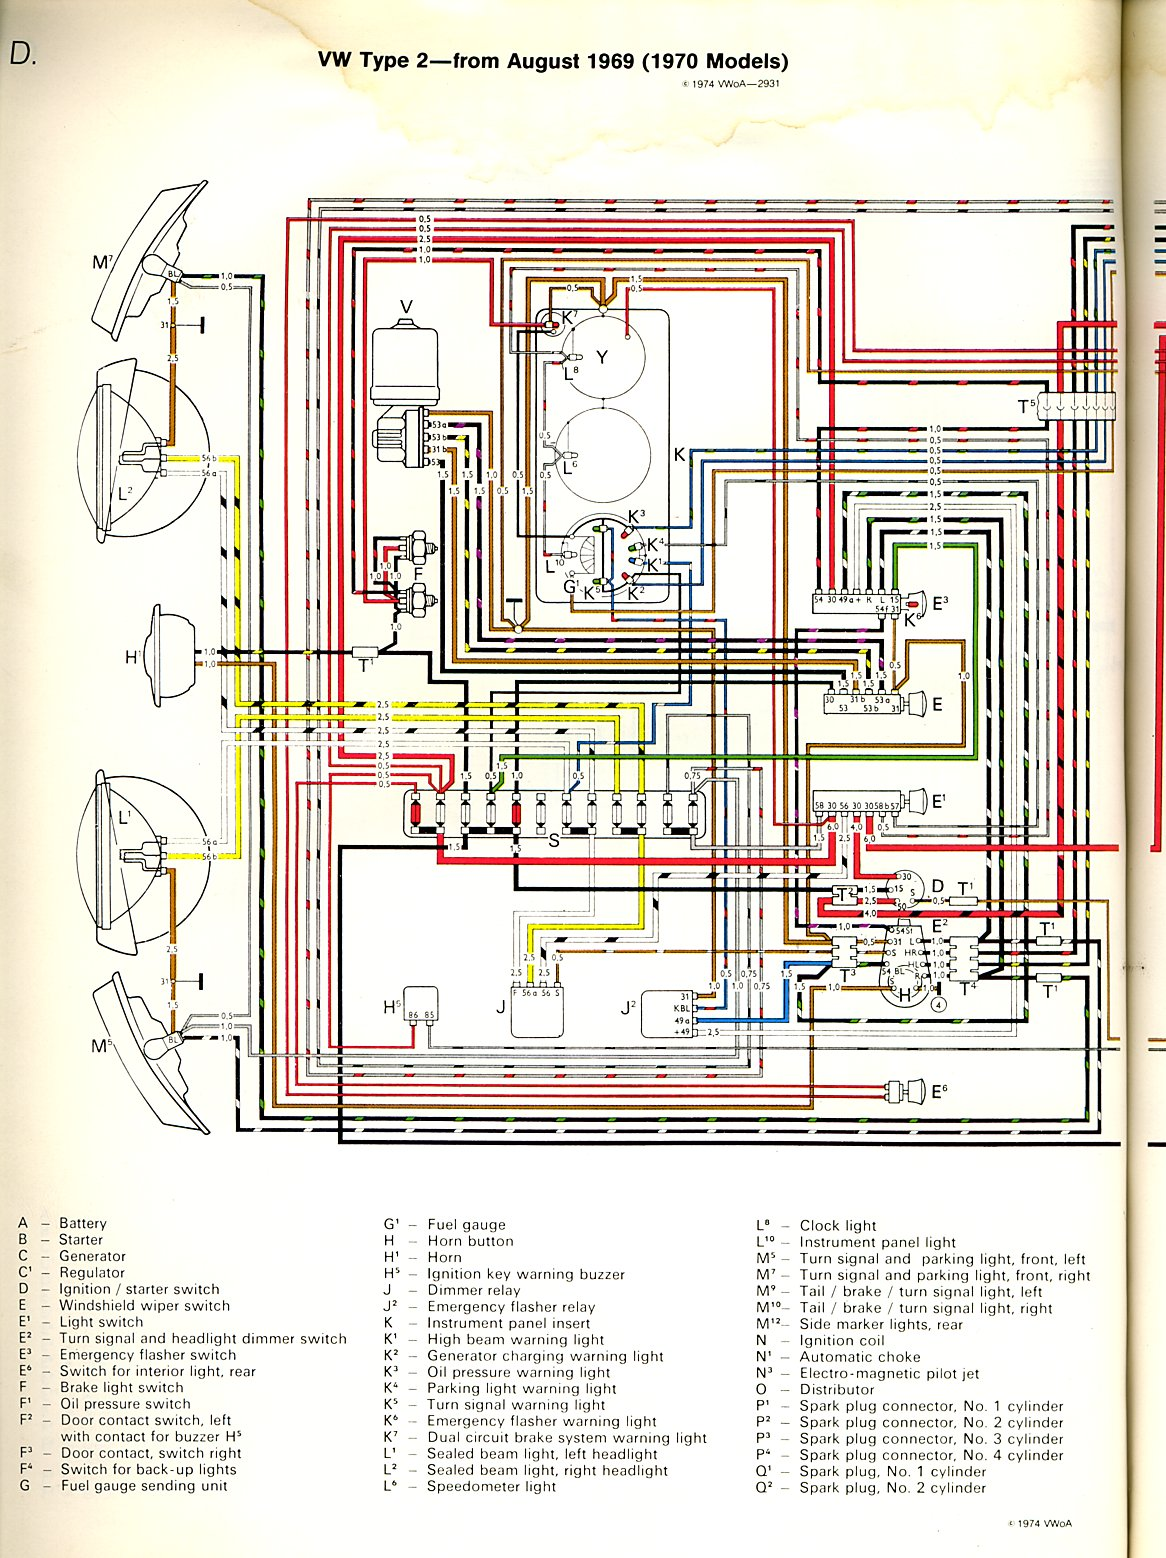 1977 Vw T3 Engine Diagram Wiring Diagrams 1970 Beetle Thesamba Com Type 2 Rh 36 Horse 1600cc Tin